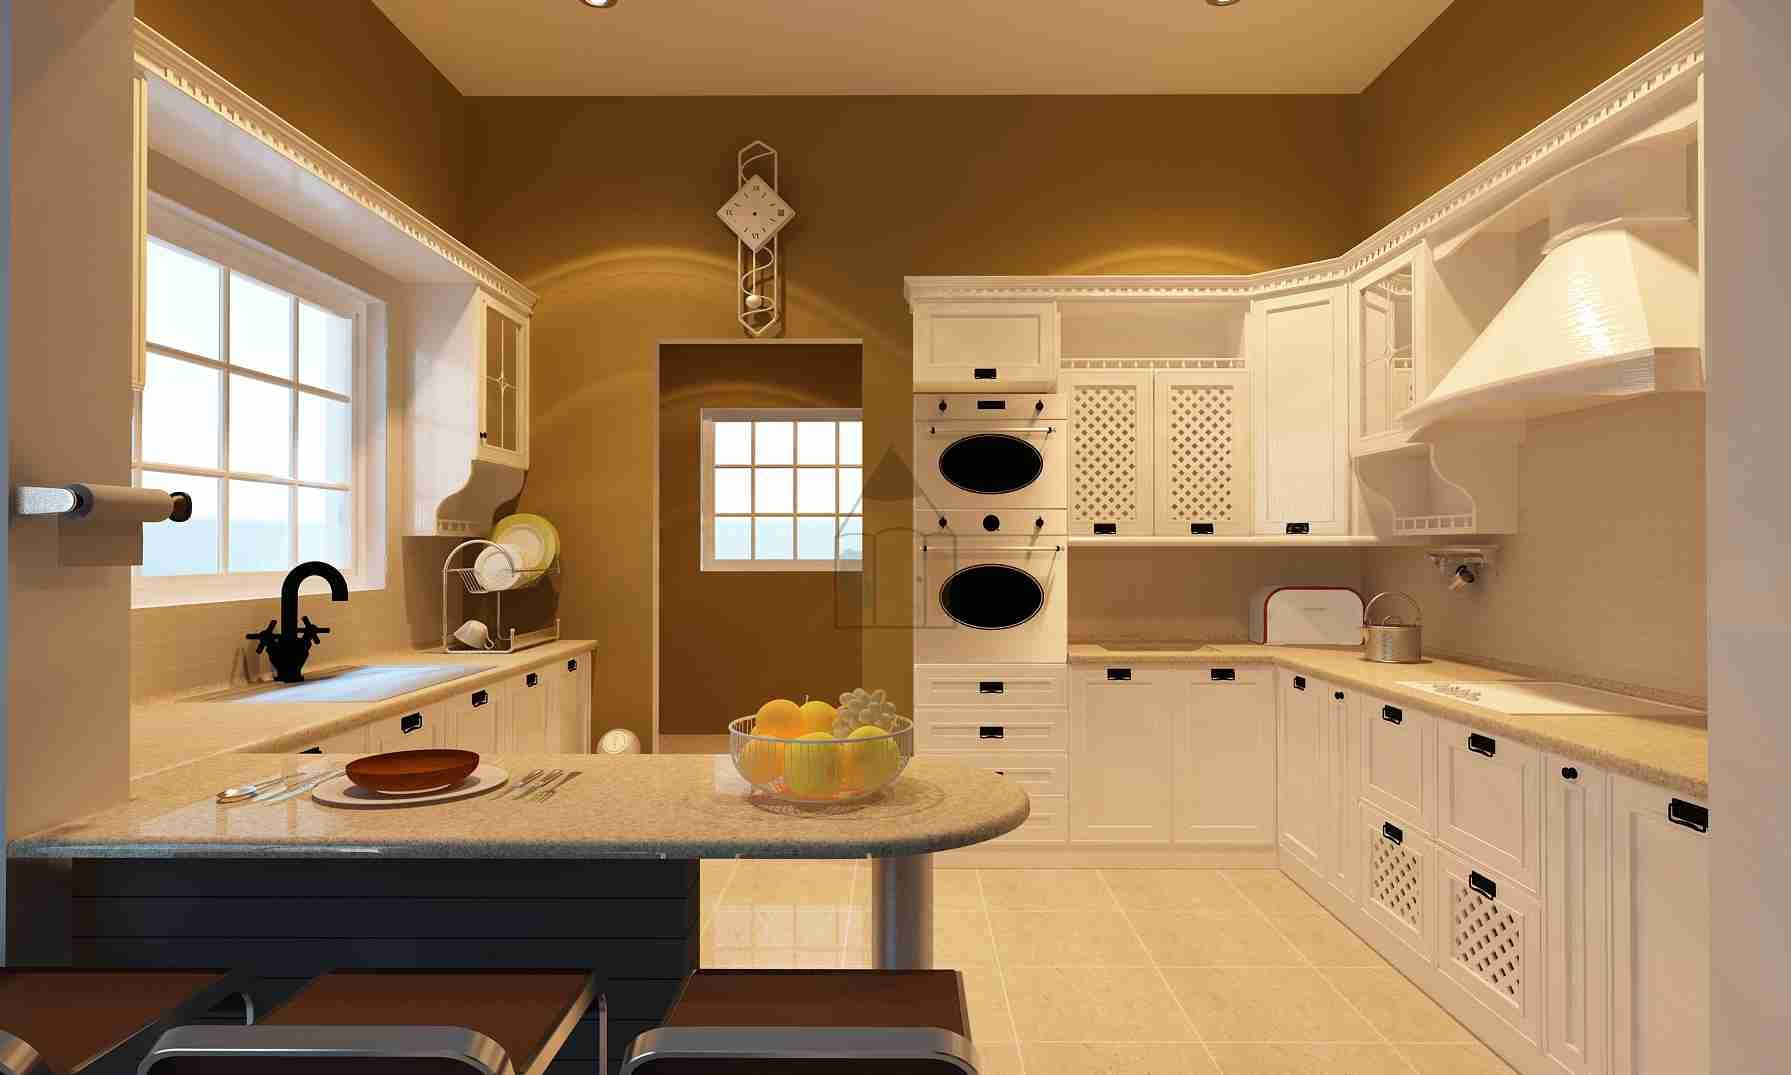 Kitchen Cabinet Design In Pakistan  Kitchen Interior Designs Entrancing Design Of Kitchen Cabinets Pictures Design Decoration